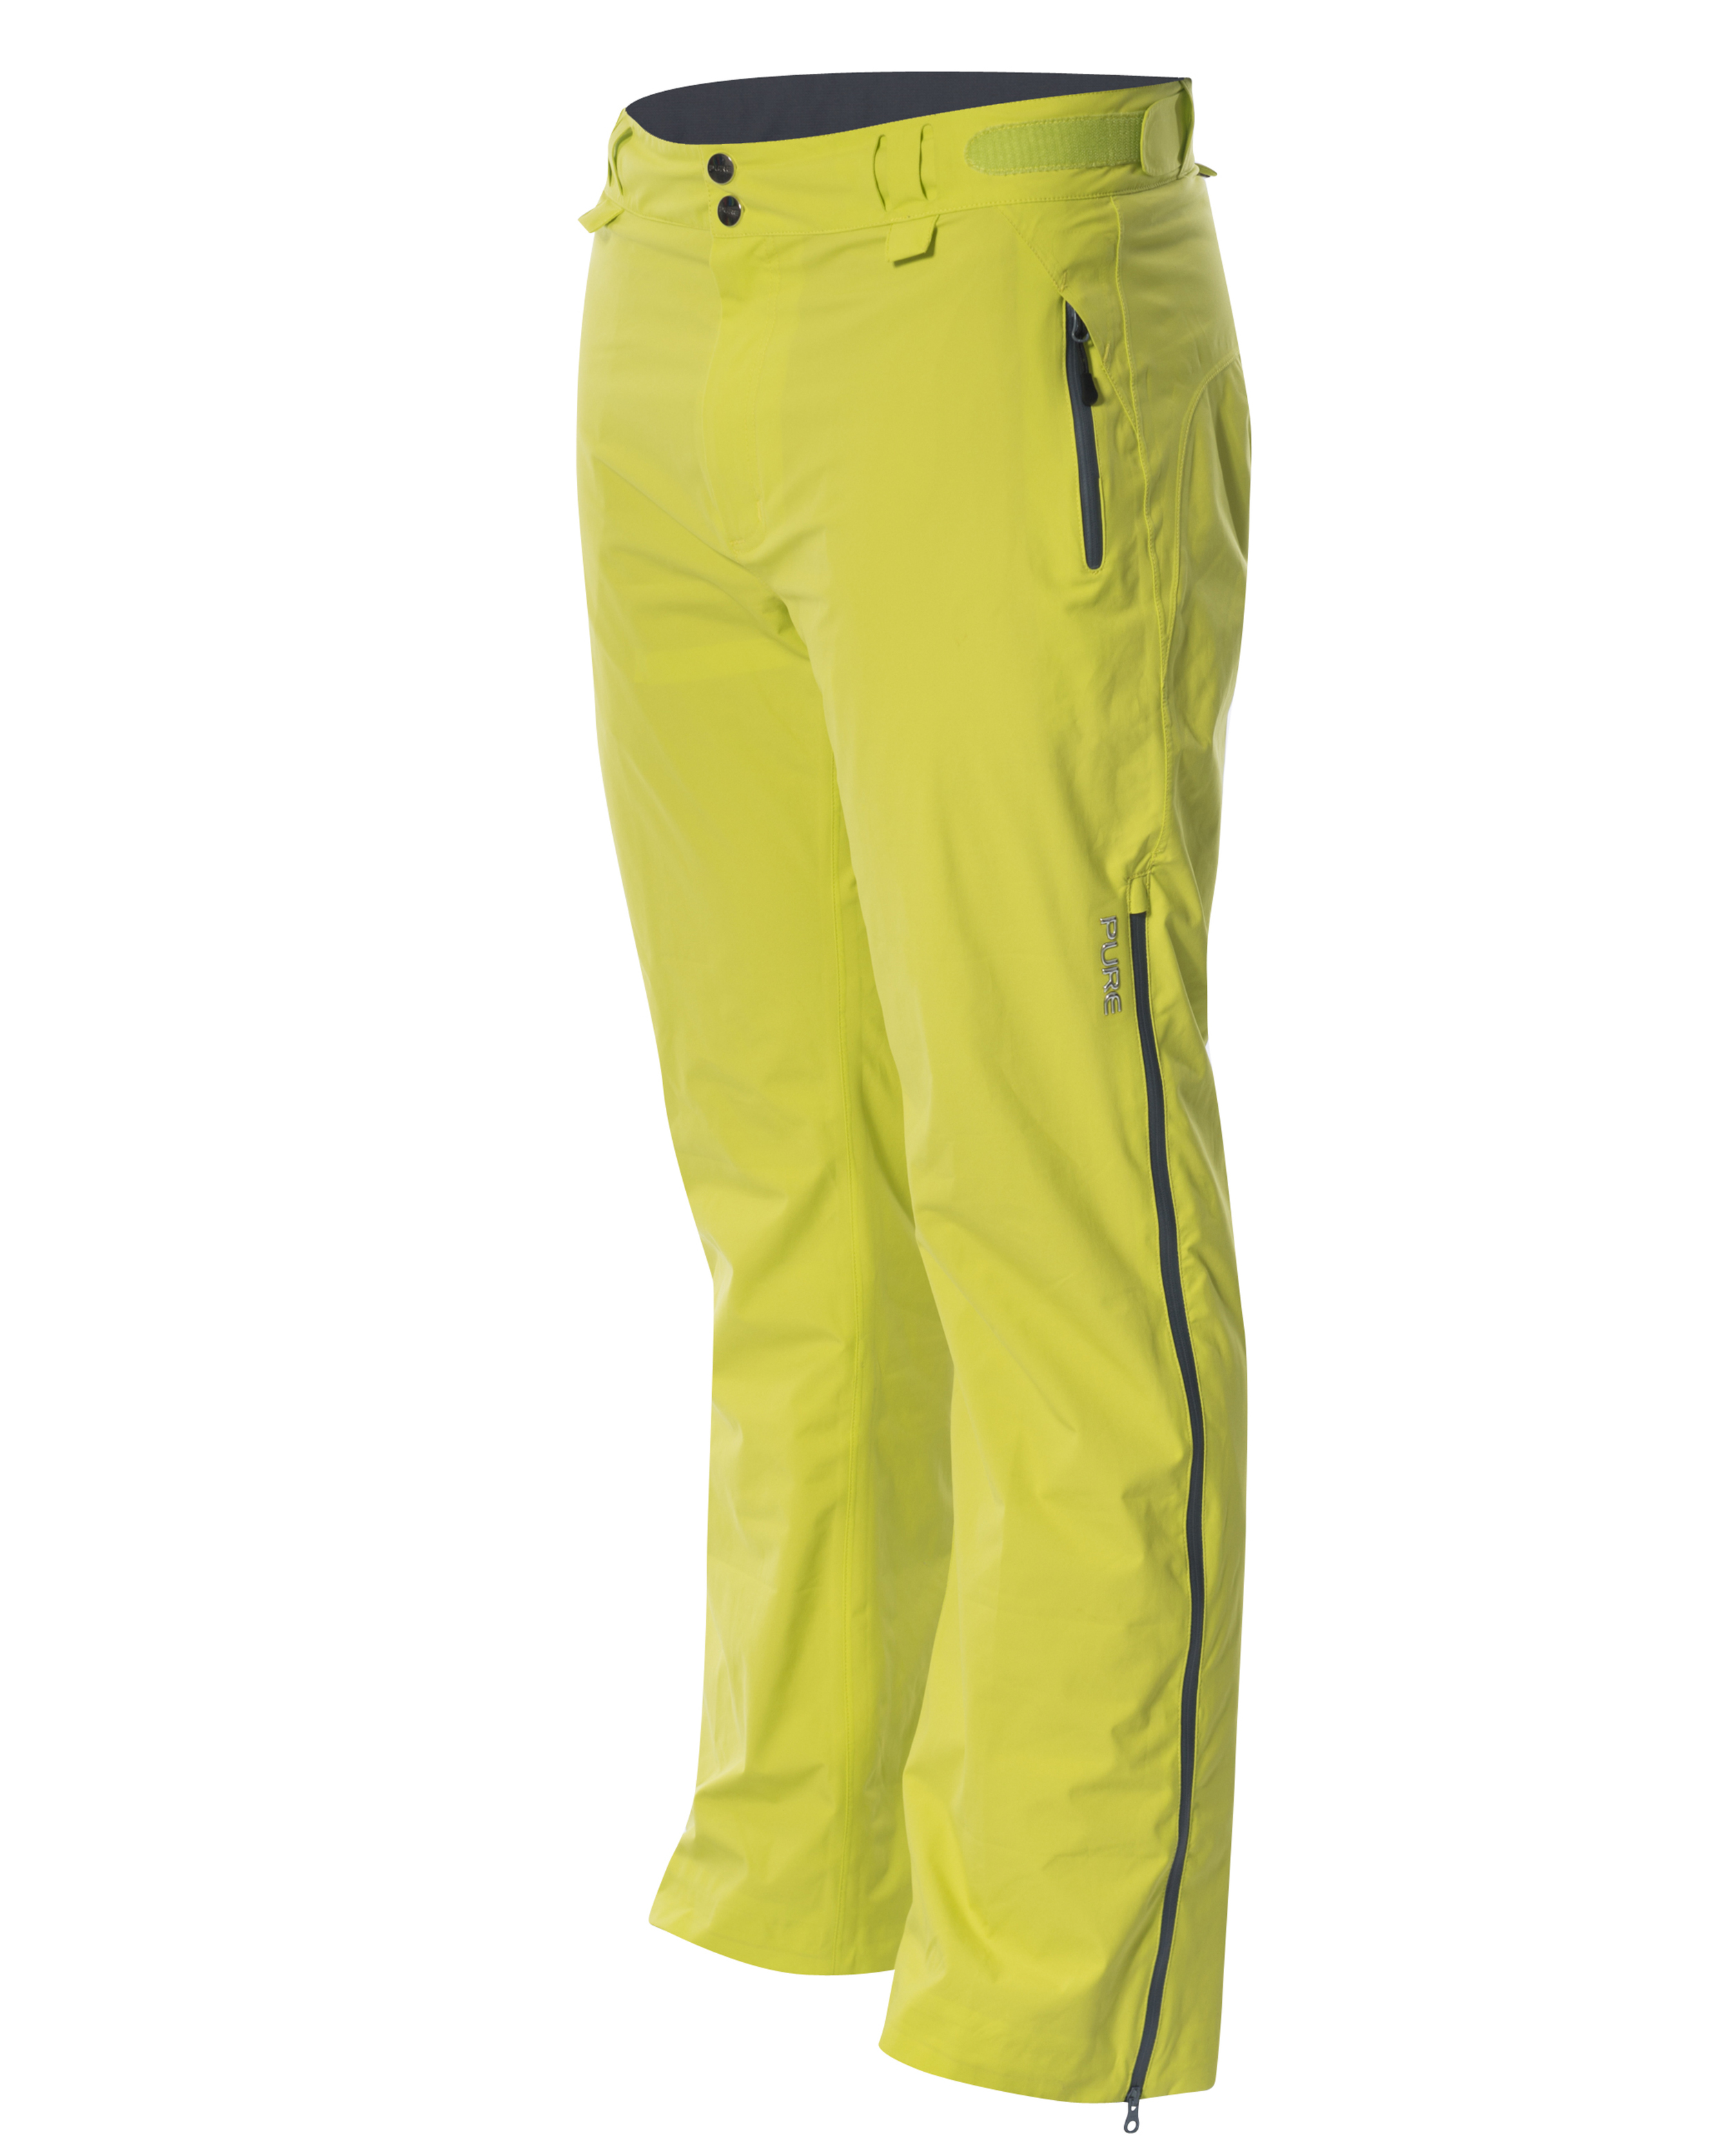 Andes Men's Pure Mountain - Lime